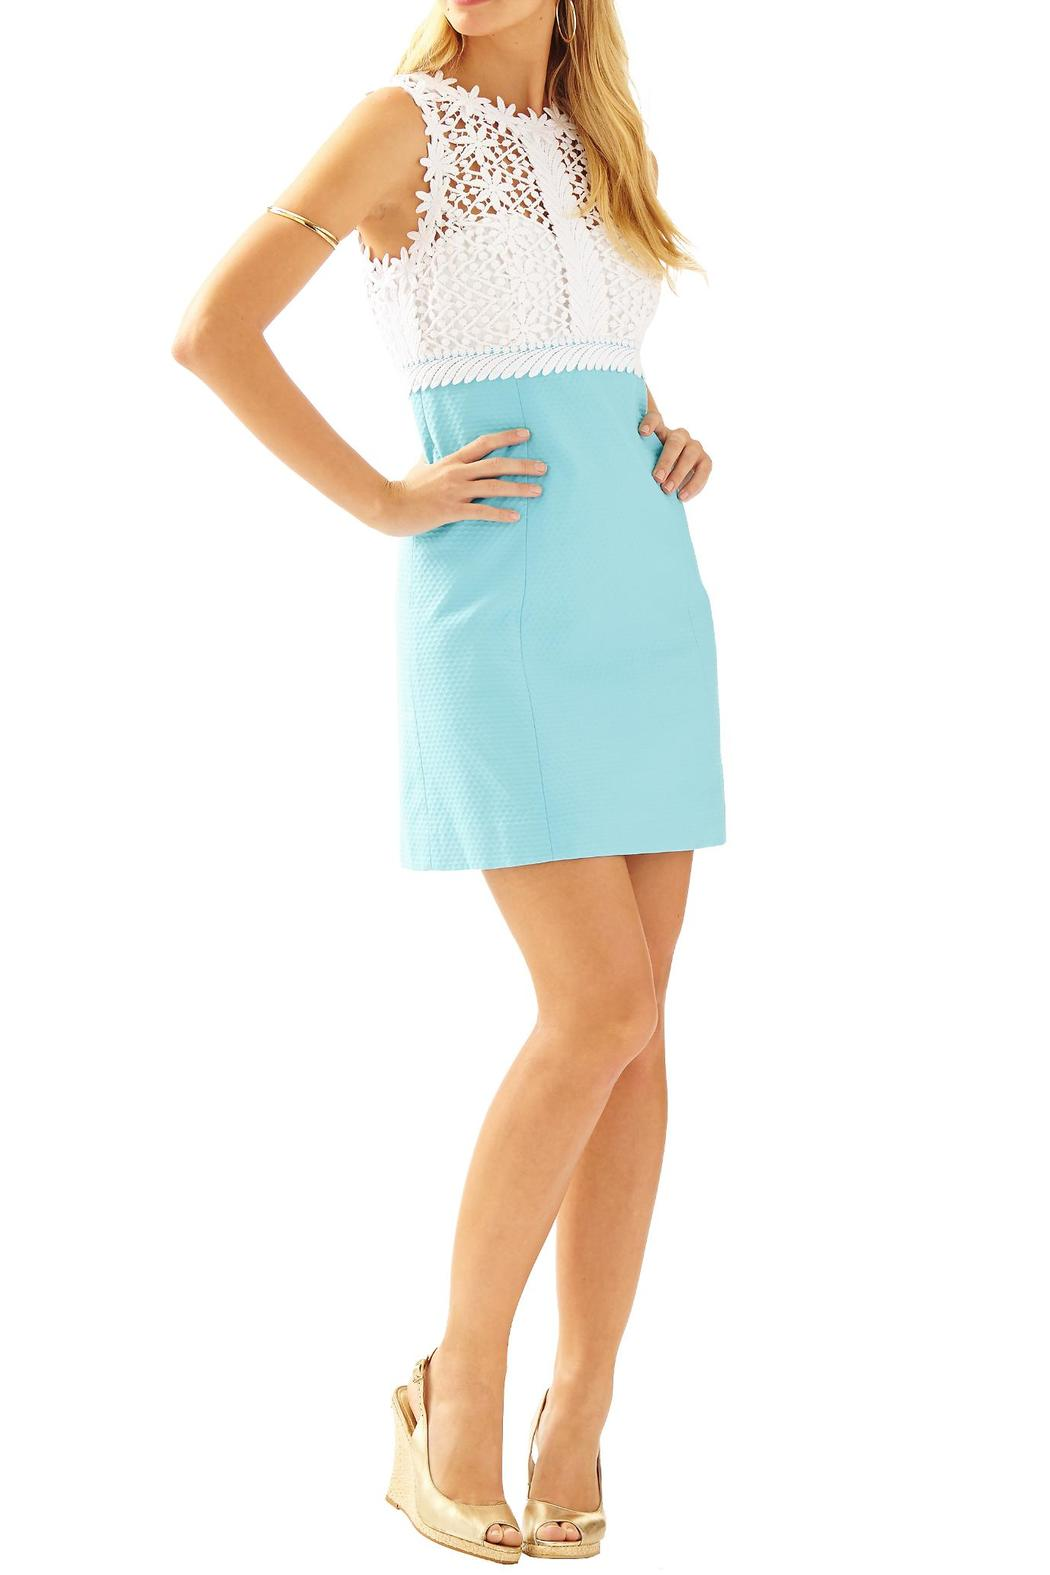 Lilly Pulitzer Breakers Lace-Top Shift-Dress from Sandestin Golf ...